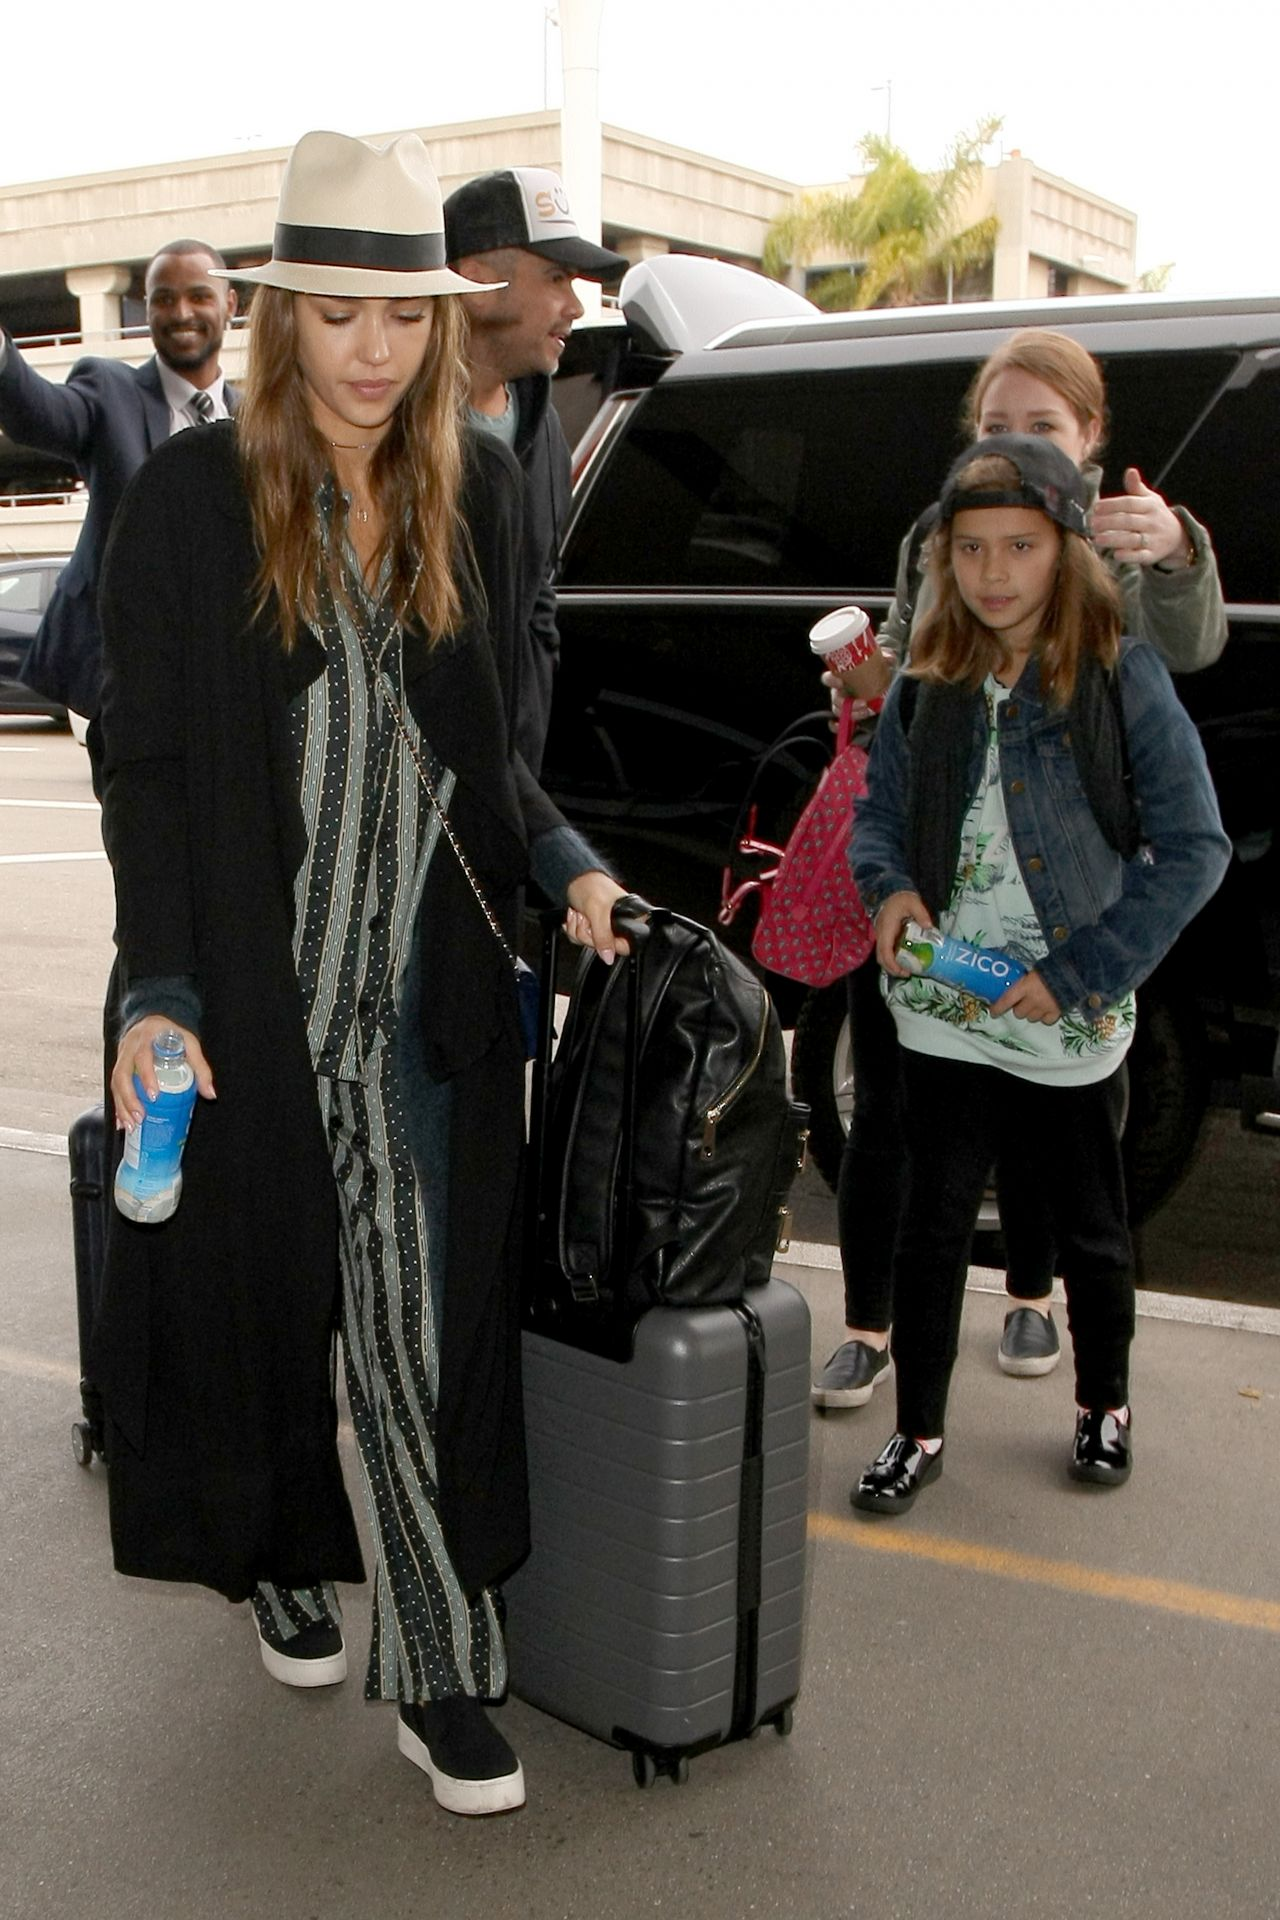 http://celebmafia.com/wp-content/uploads/2016/12/jessica-alba-arrives-at-lax-airport-in-los-angeles-12-26-2016-3.jpg